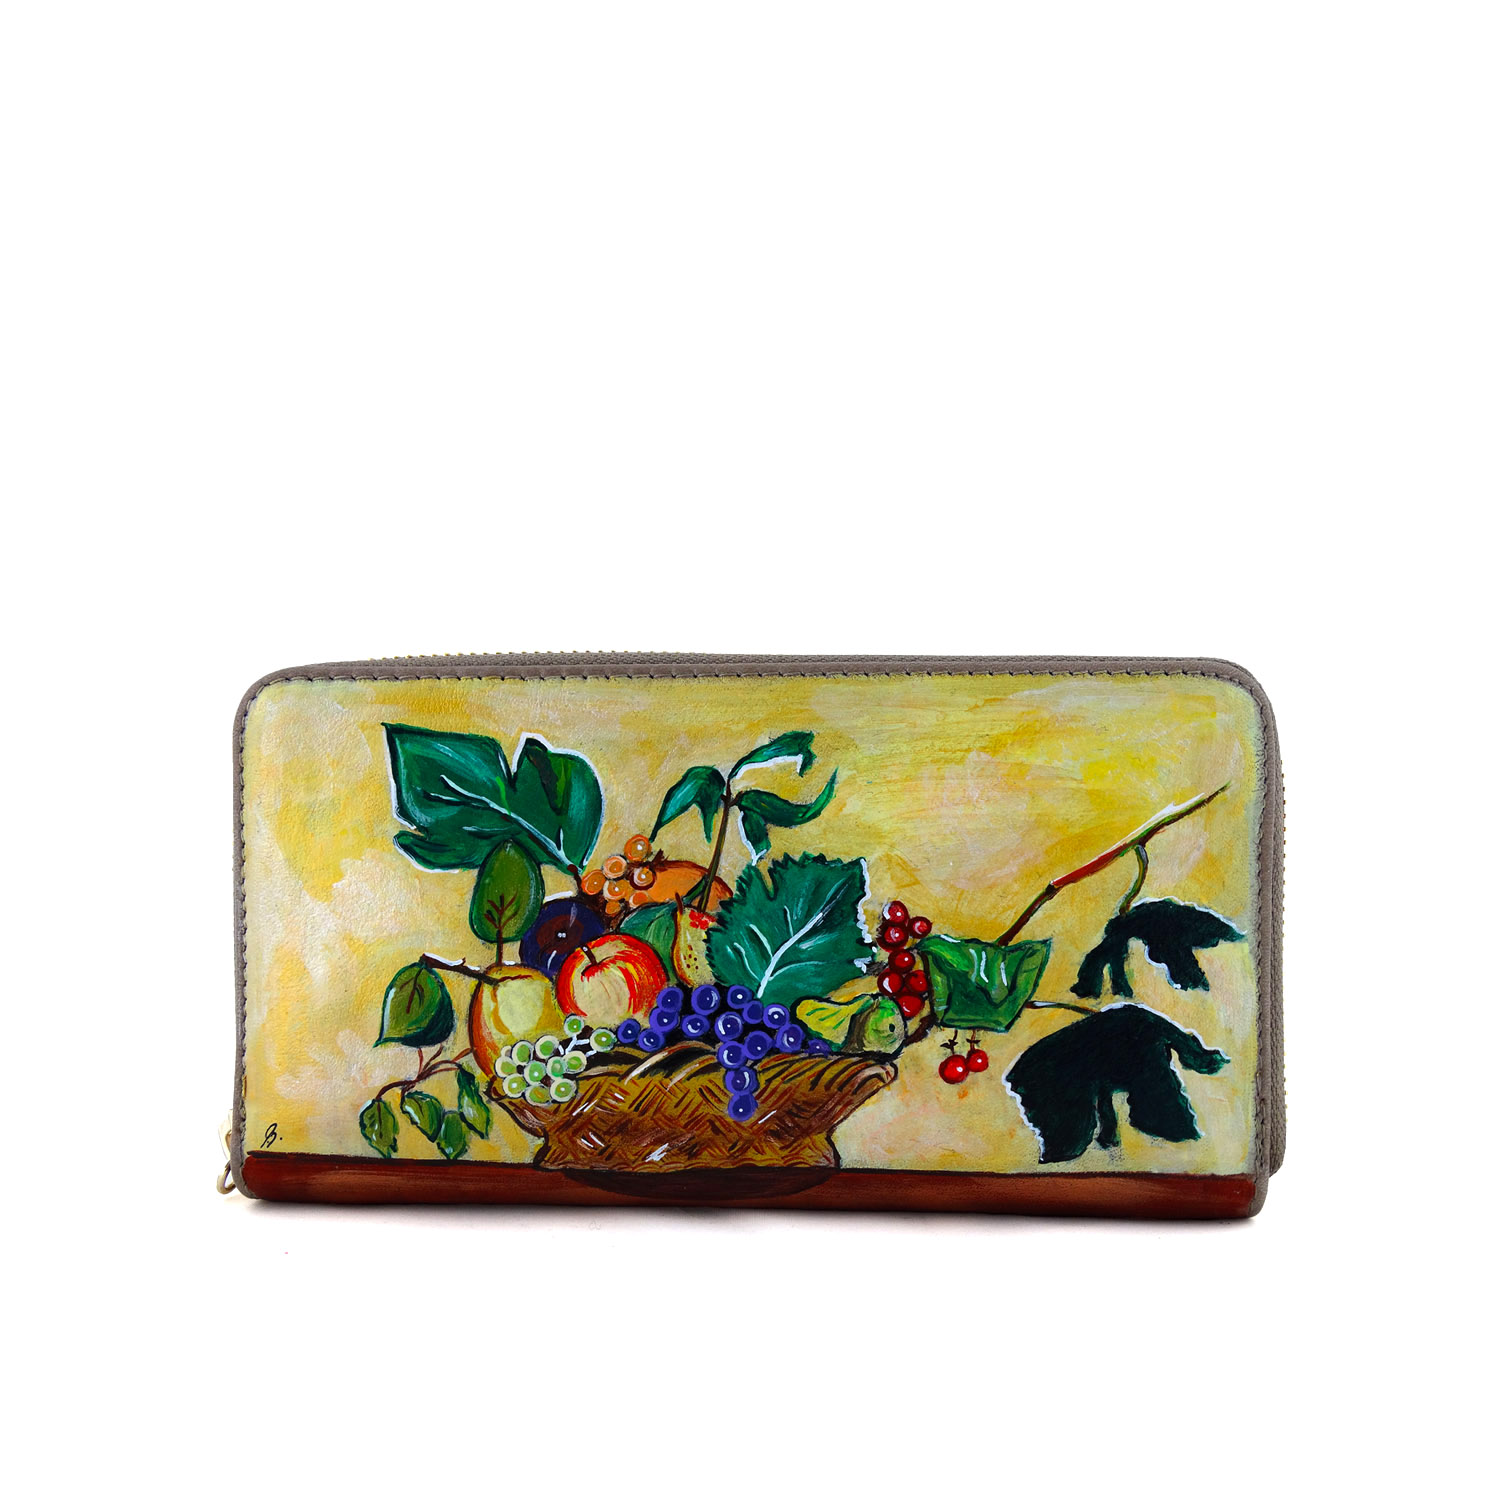 Hand painted wallet - Basket of Fruit by Caravaggio